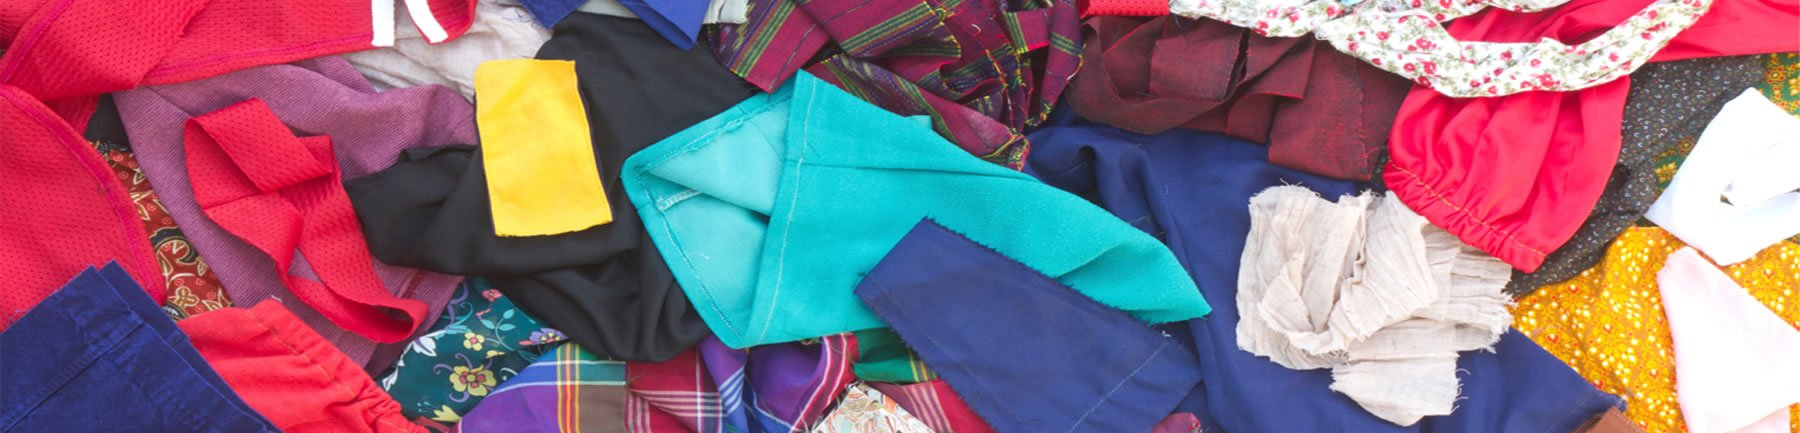 Midlands Textile recycle and export second hand clothes